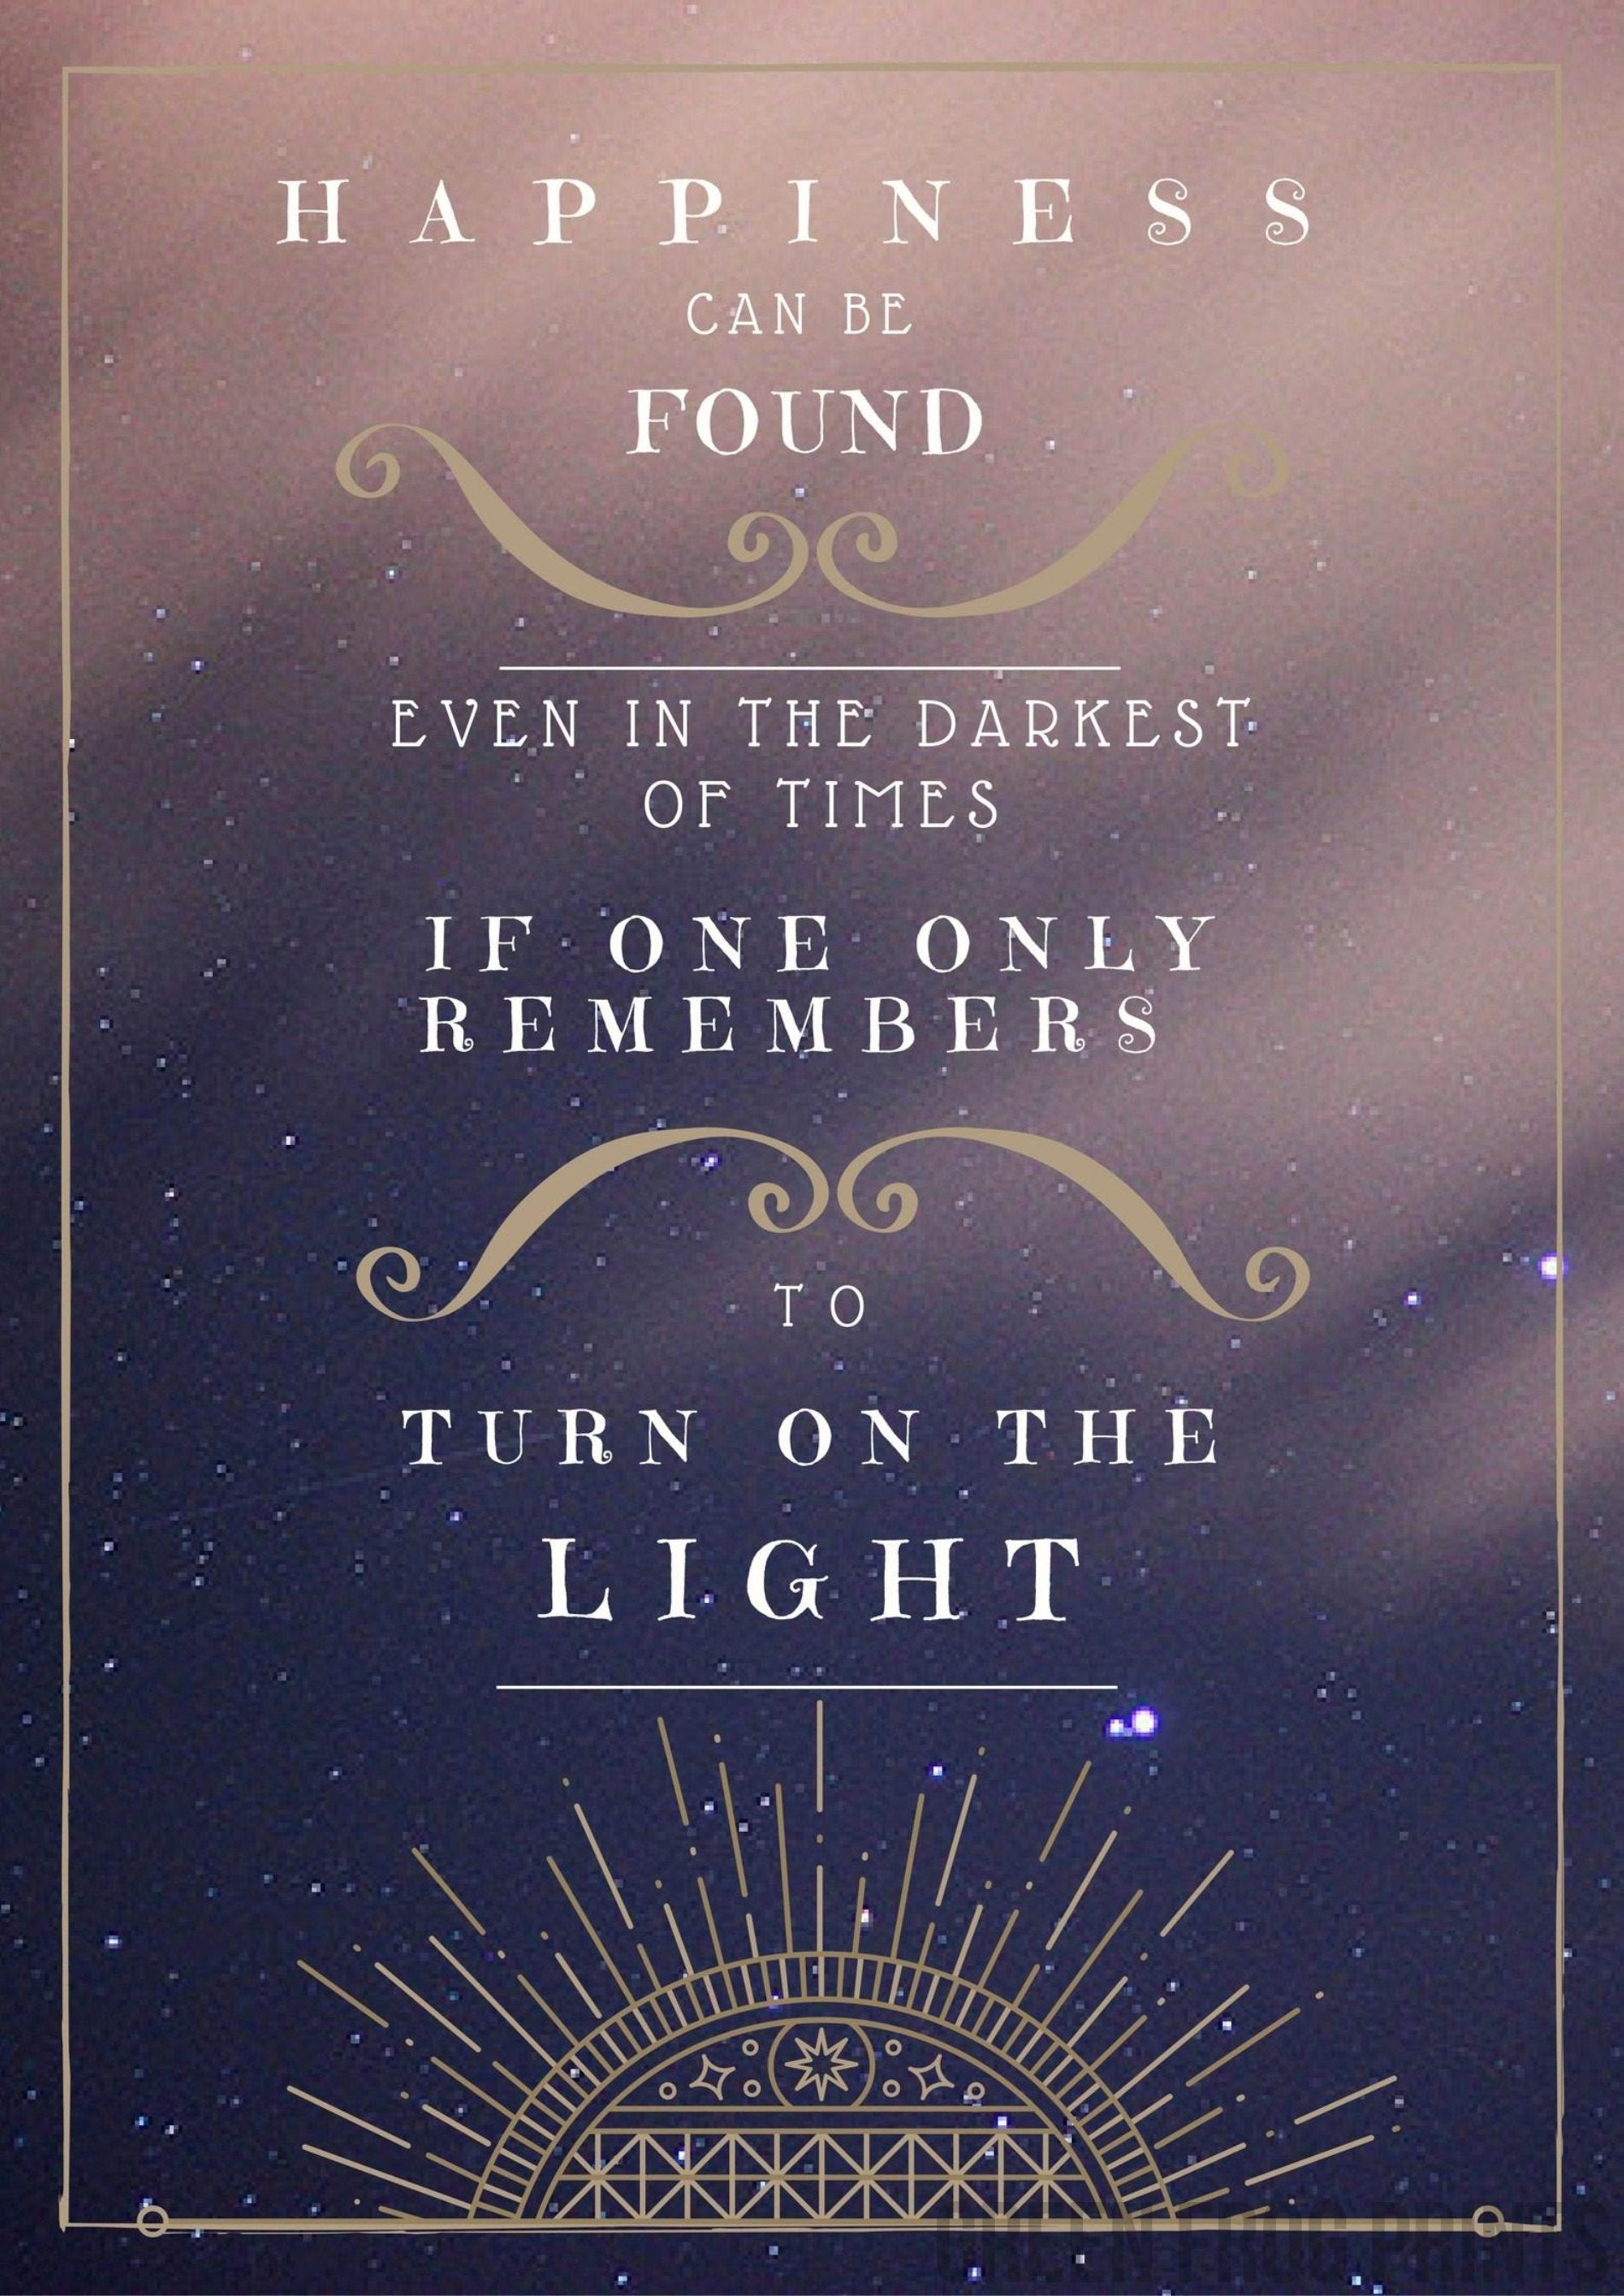 harry potter i happiness turn on the light quote poster prints